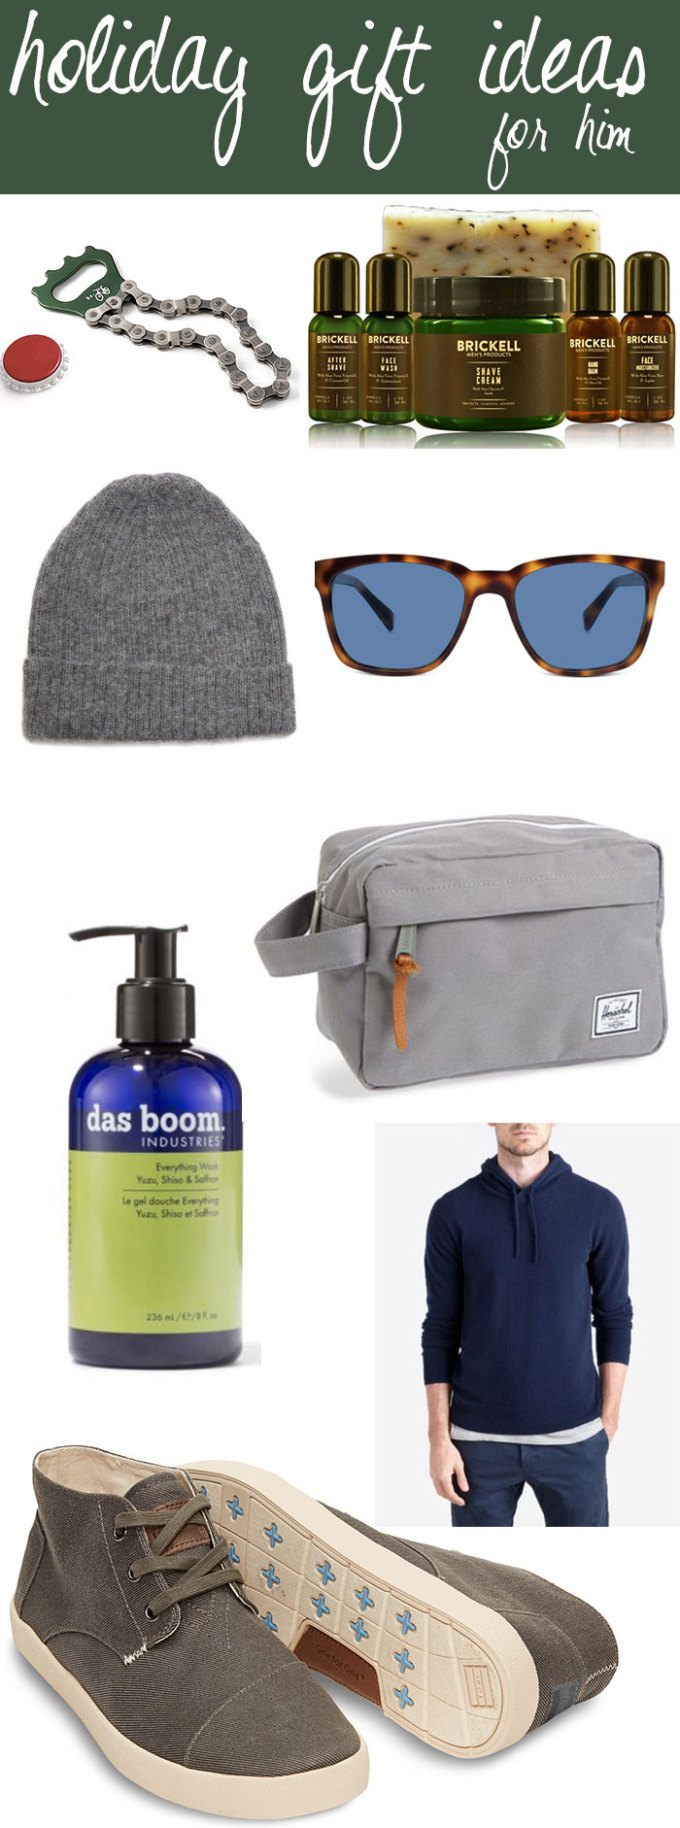 holiday gift ideas for him